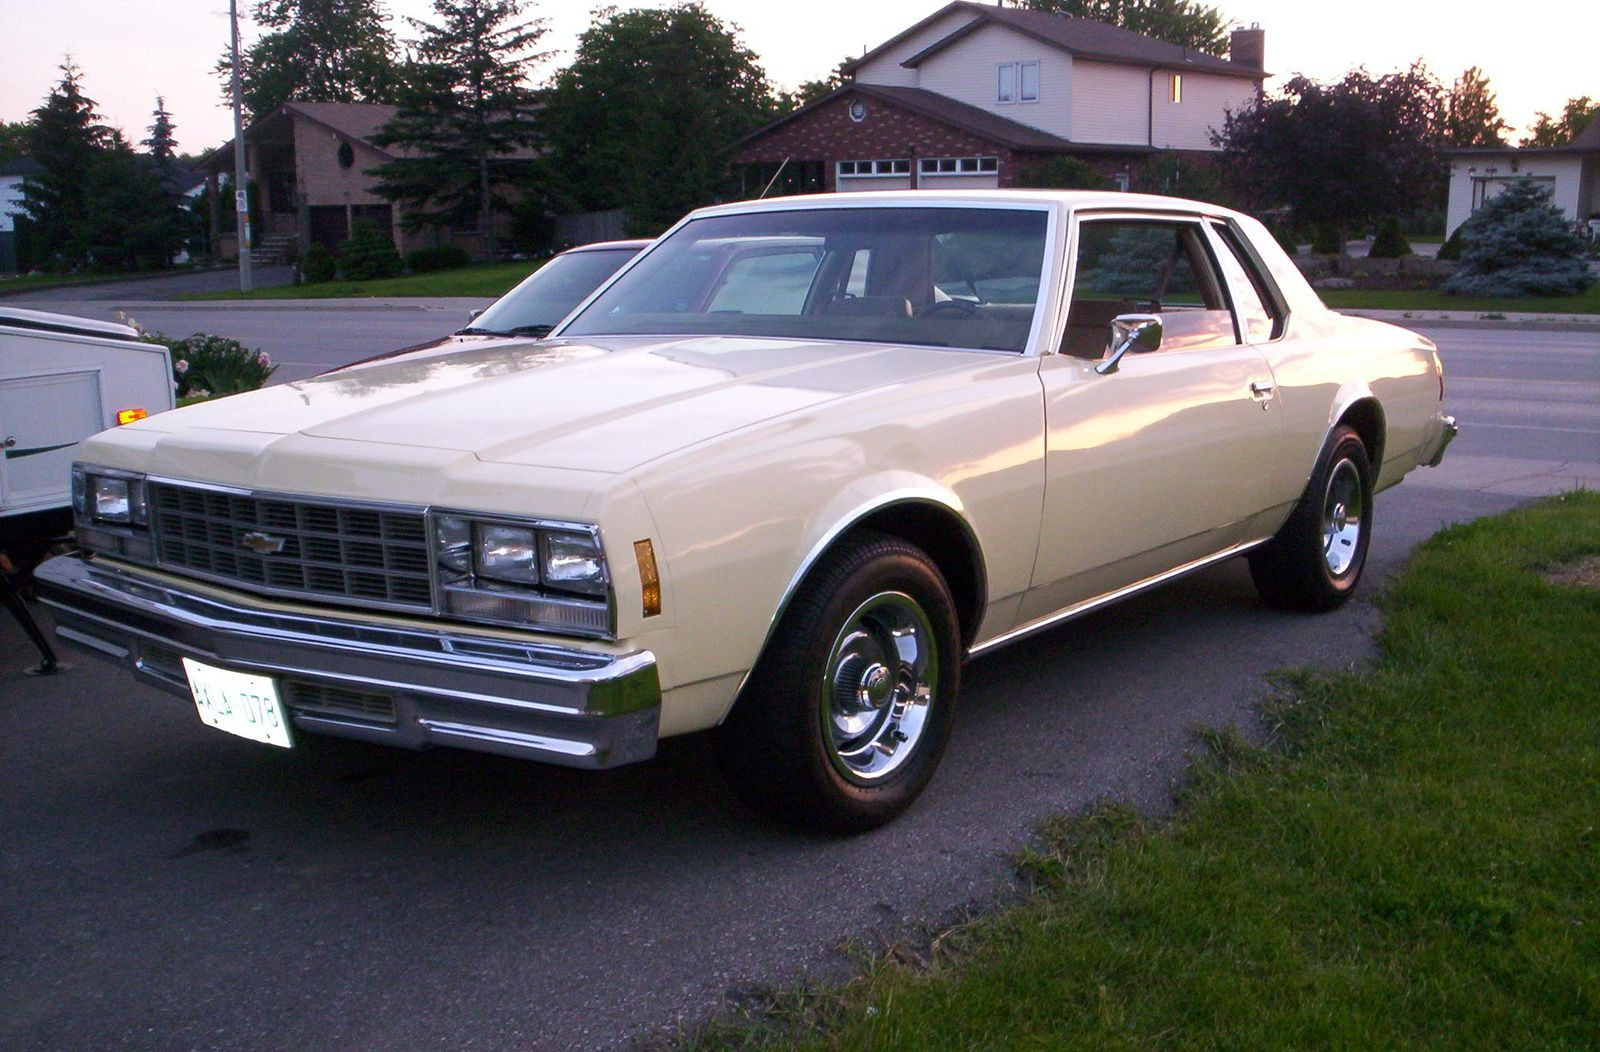 1978 Chevrolet Impala Pictures Cargurus Chevrolet Impala Classic Cars Trucks Chevy Chevrolet